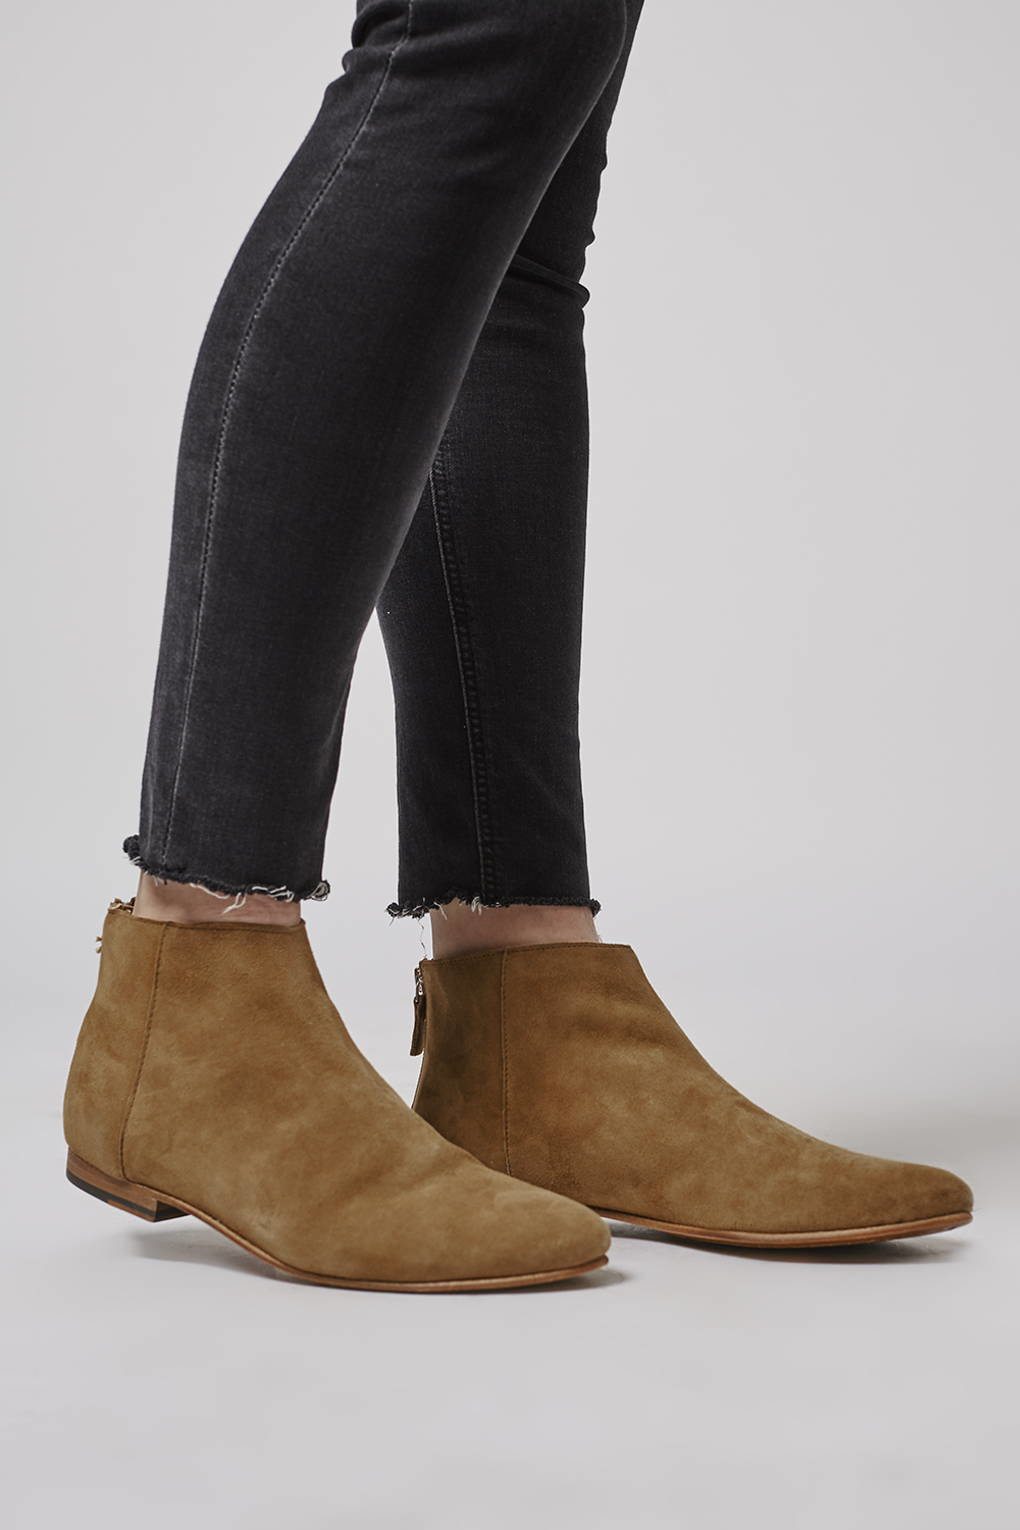 TOPSHOP Leather Apple-bee Ankle Boots in Tan (Brown)